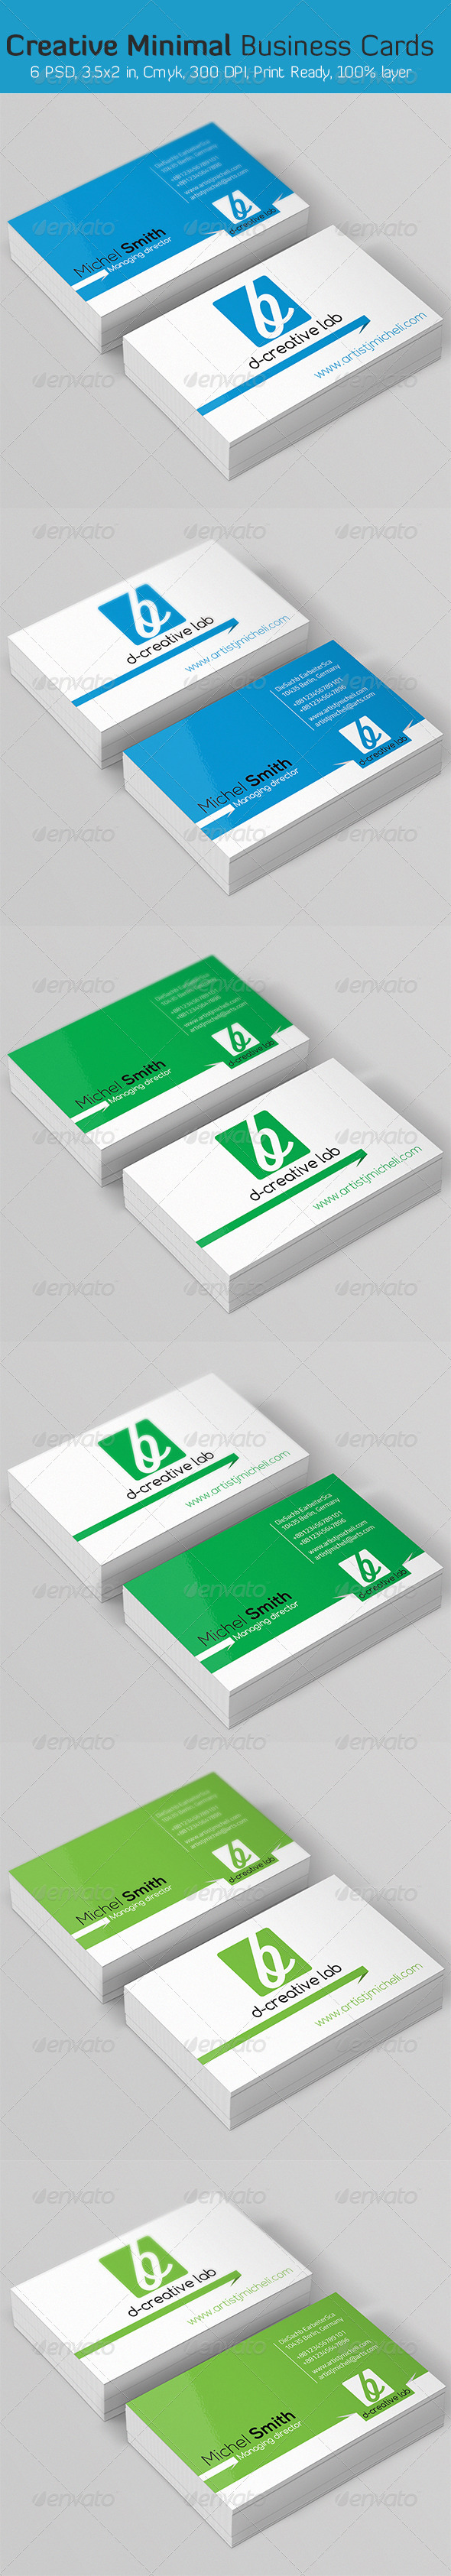 GraphicRiver Creative Minimal Business Card 6186680